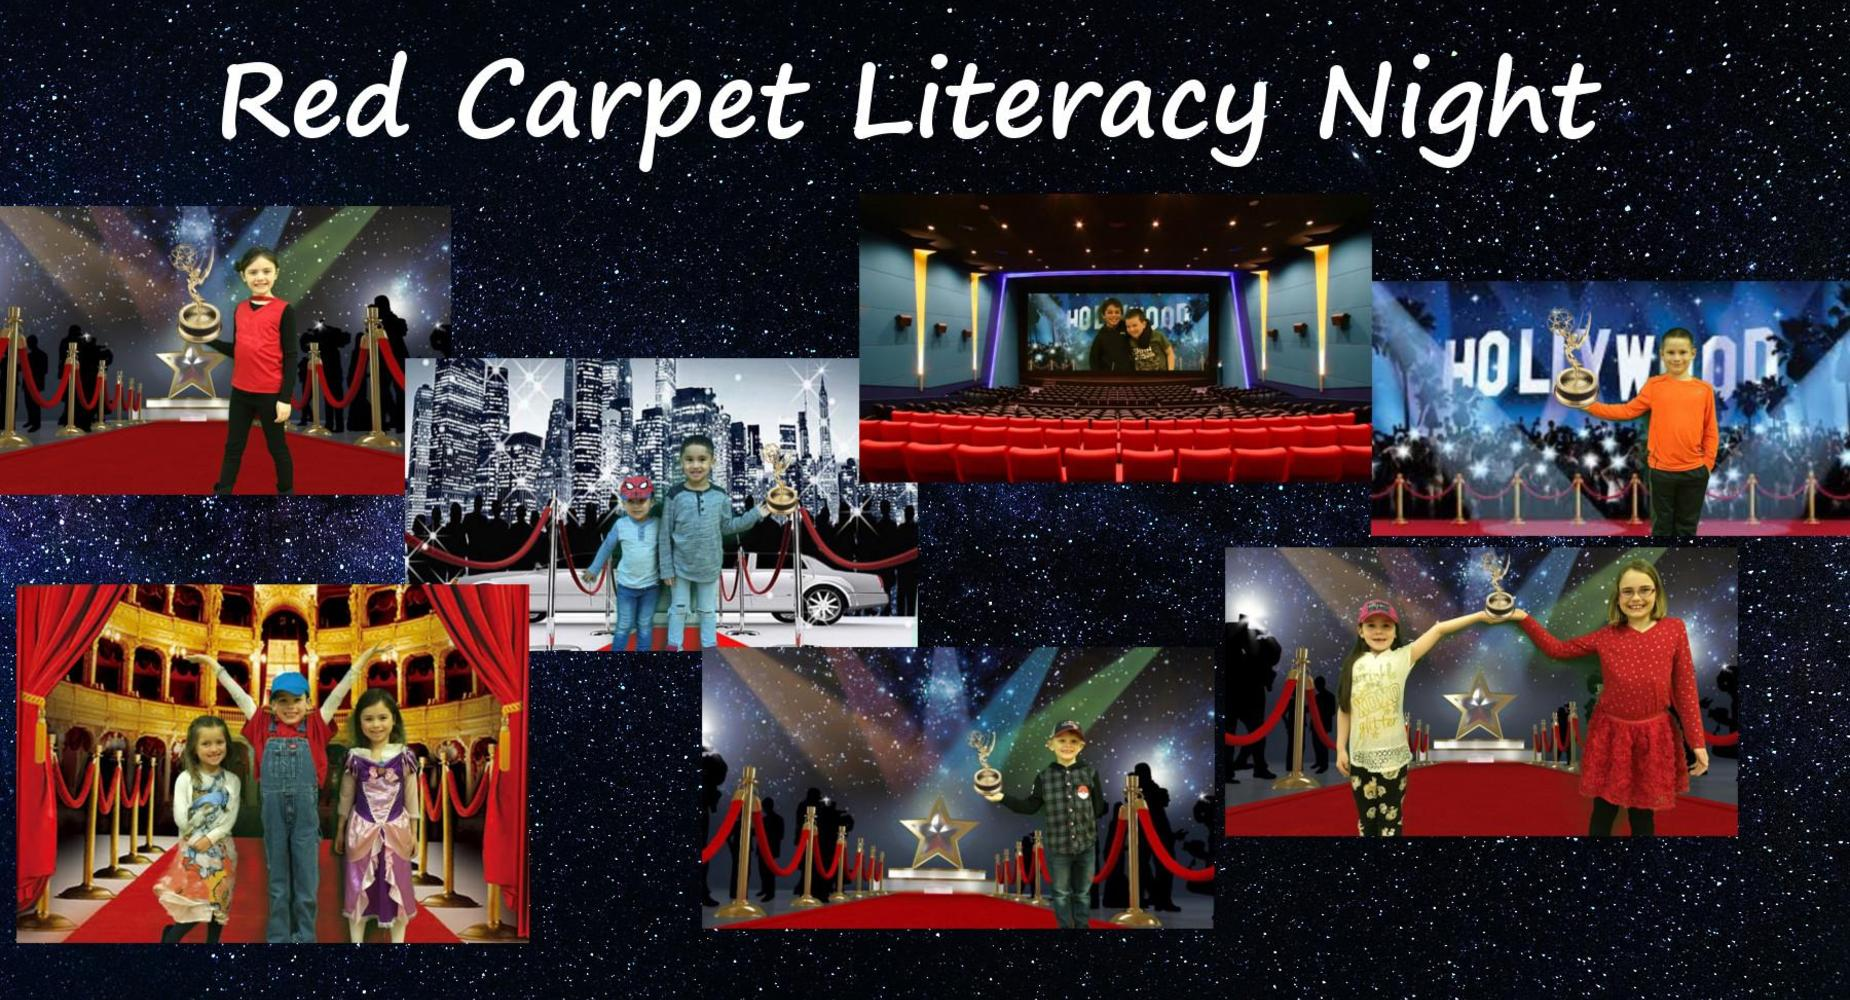 Red Carpet Literacy Night